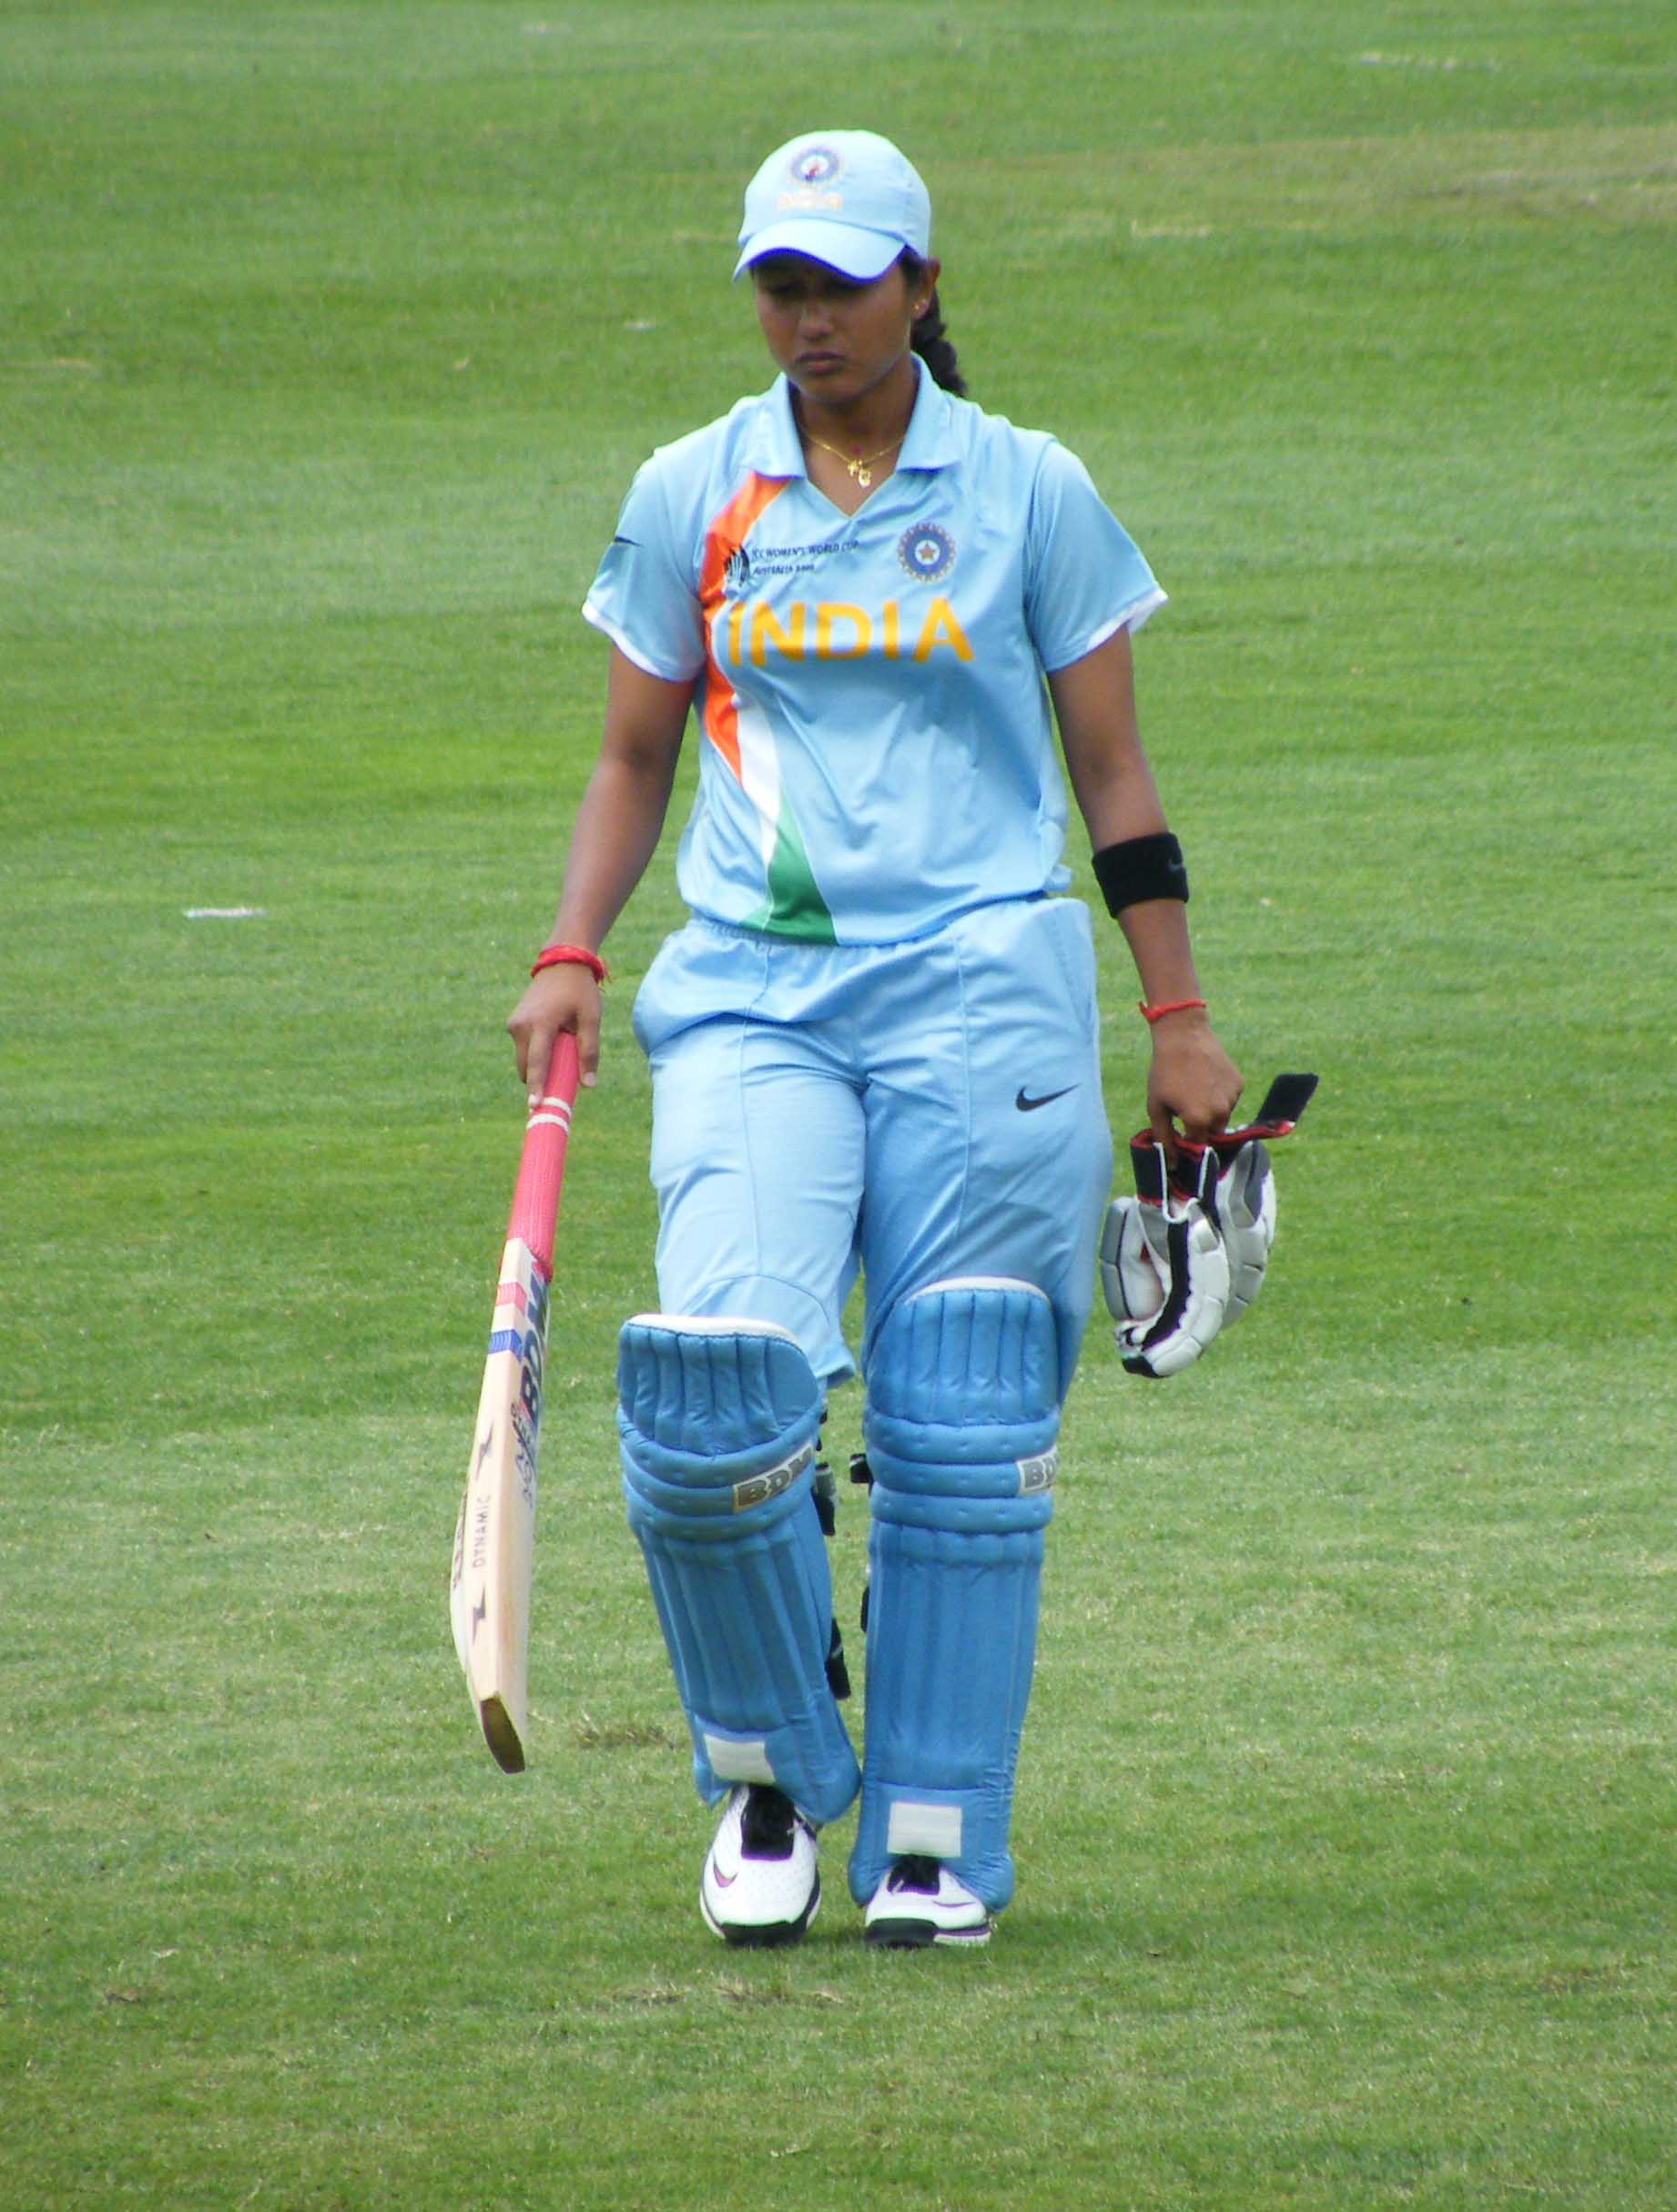 essay on role of women in sports in india